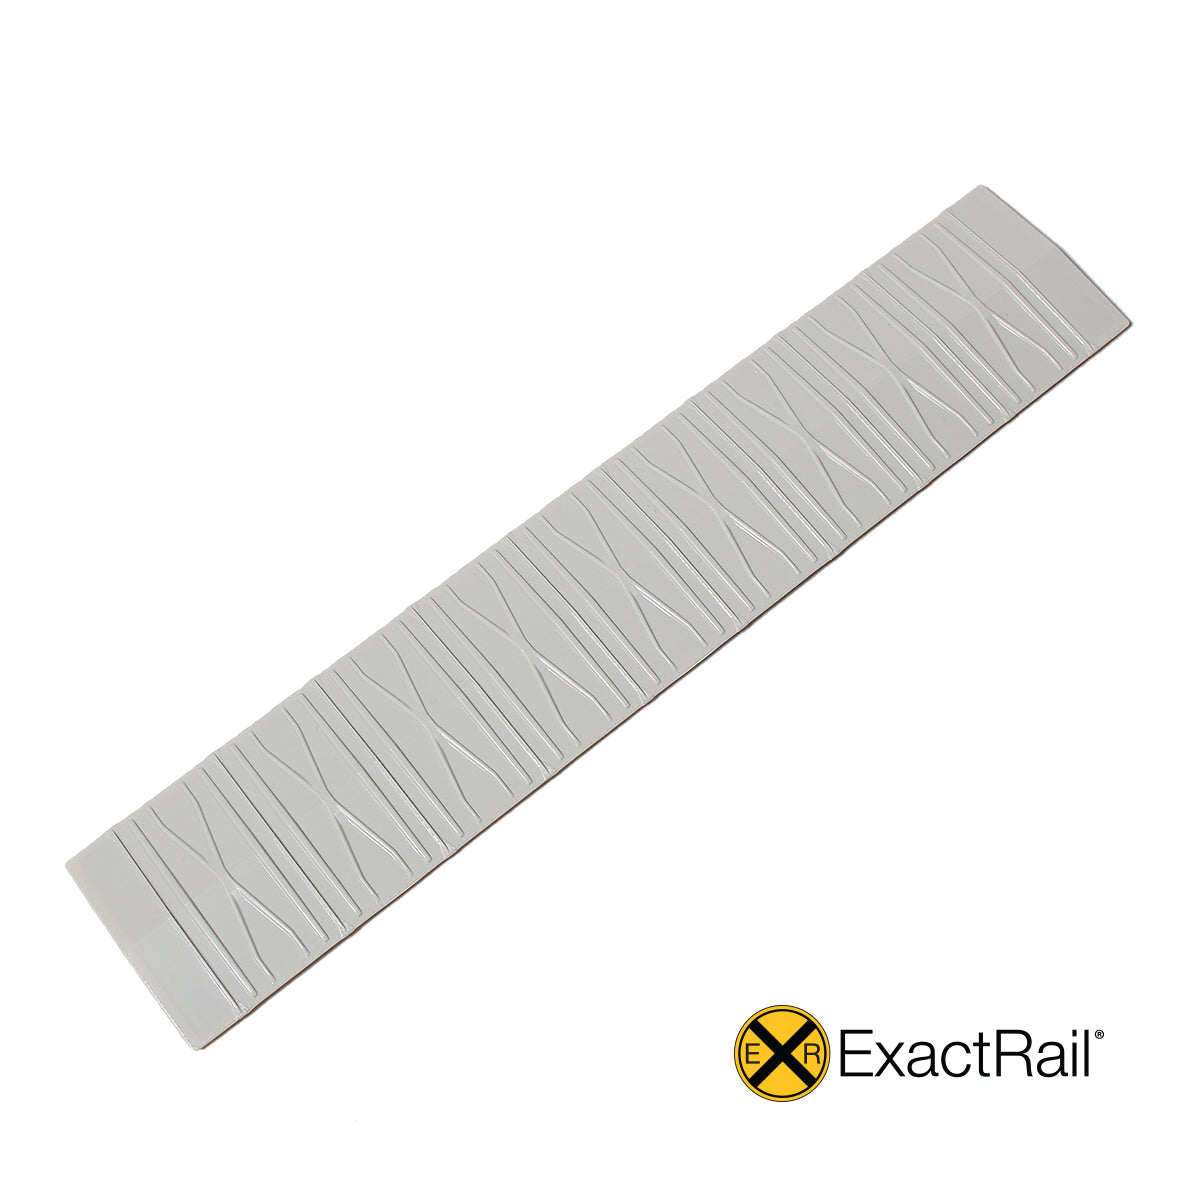 HO Scale Model Trains | ExactRail - ExactRail Model Trains